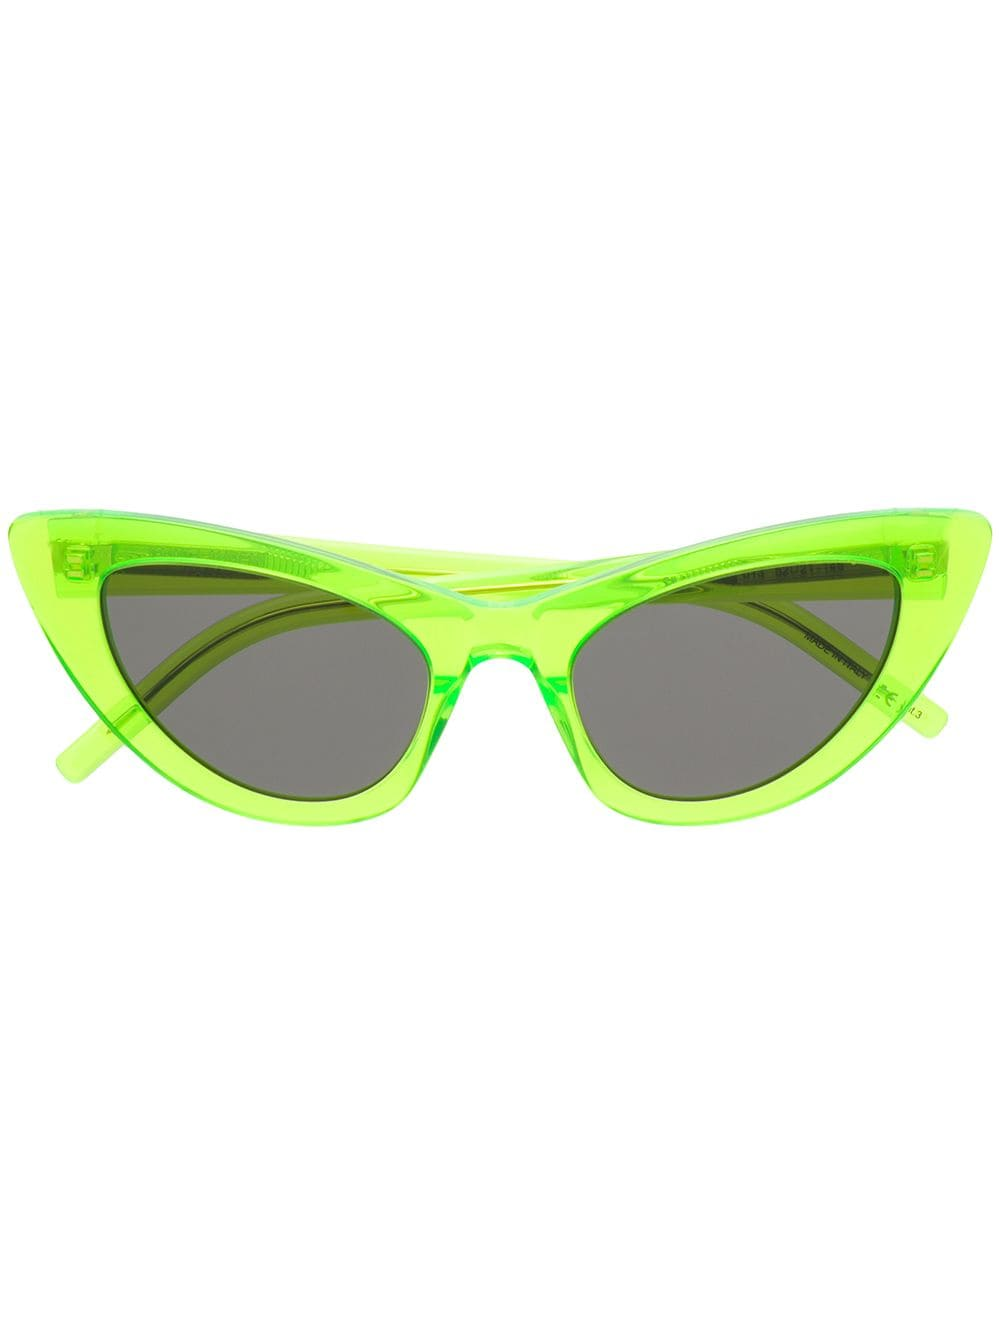 New Wave Lily Sunglasses